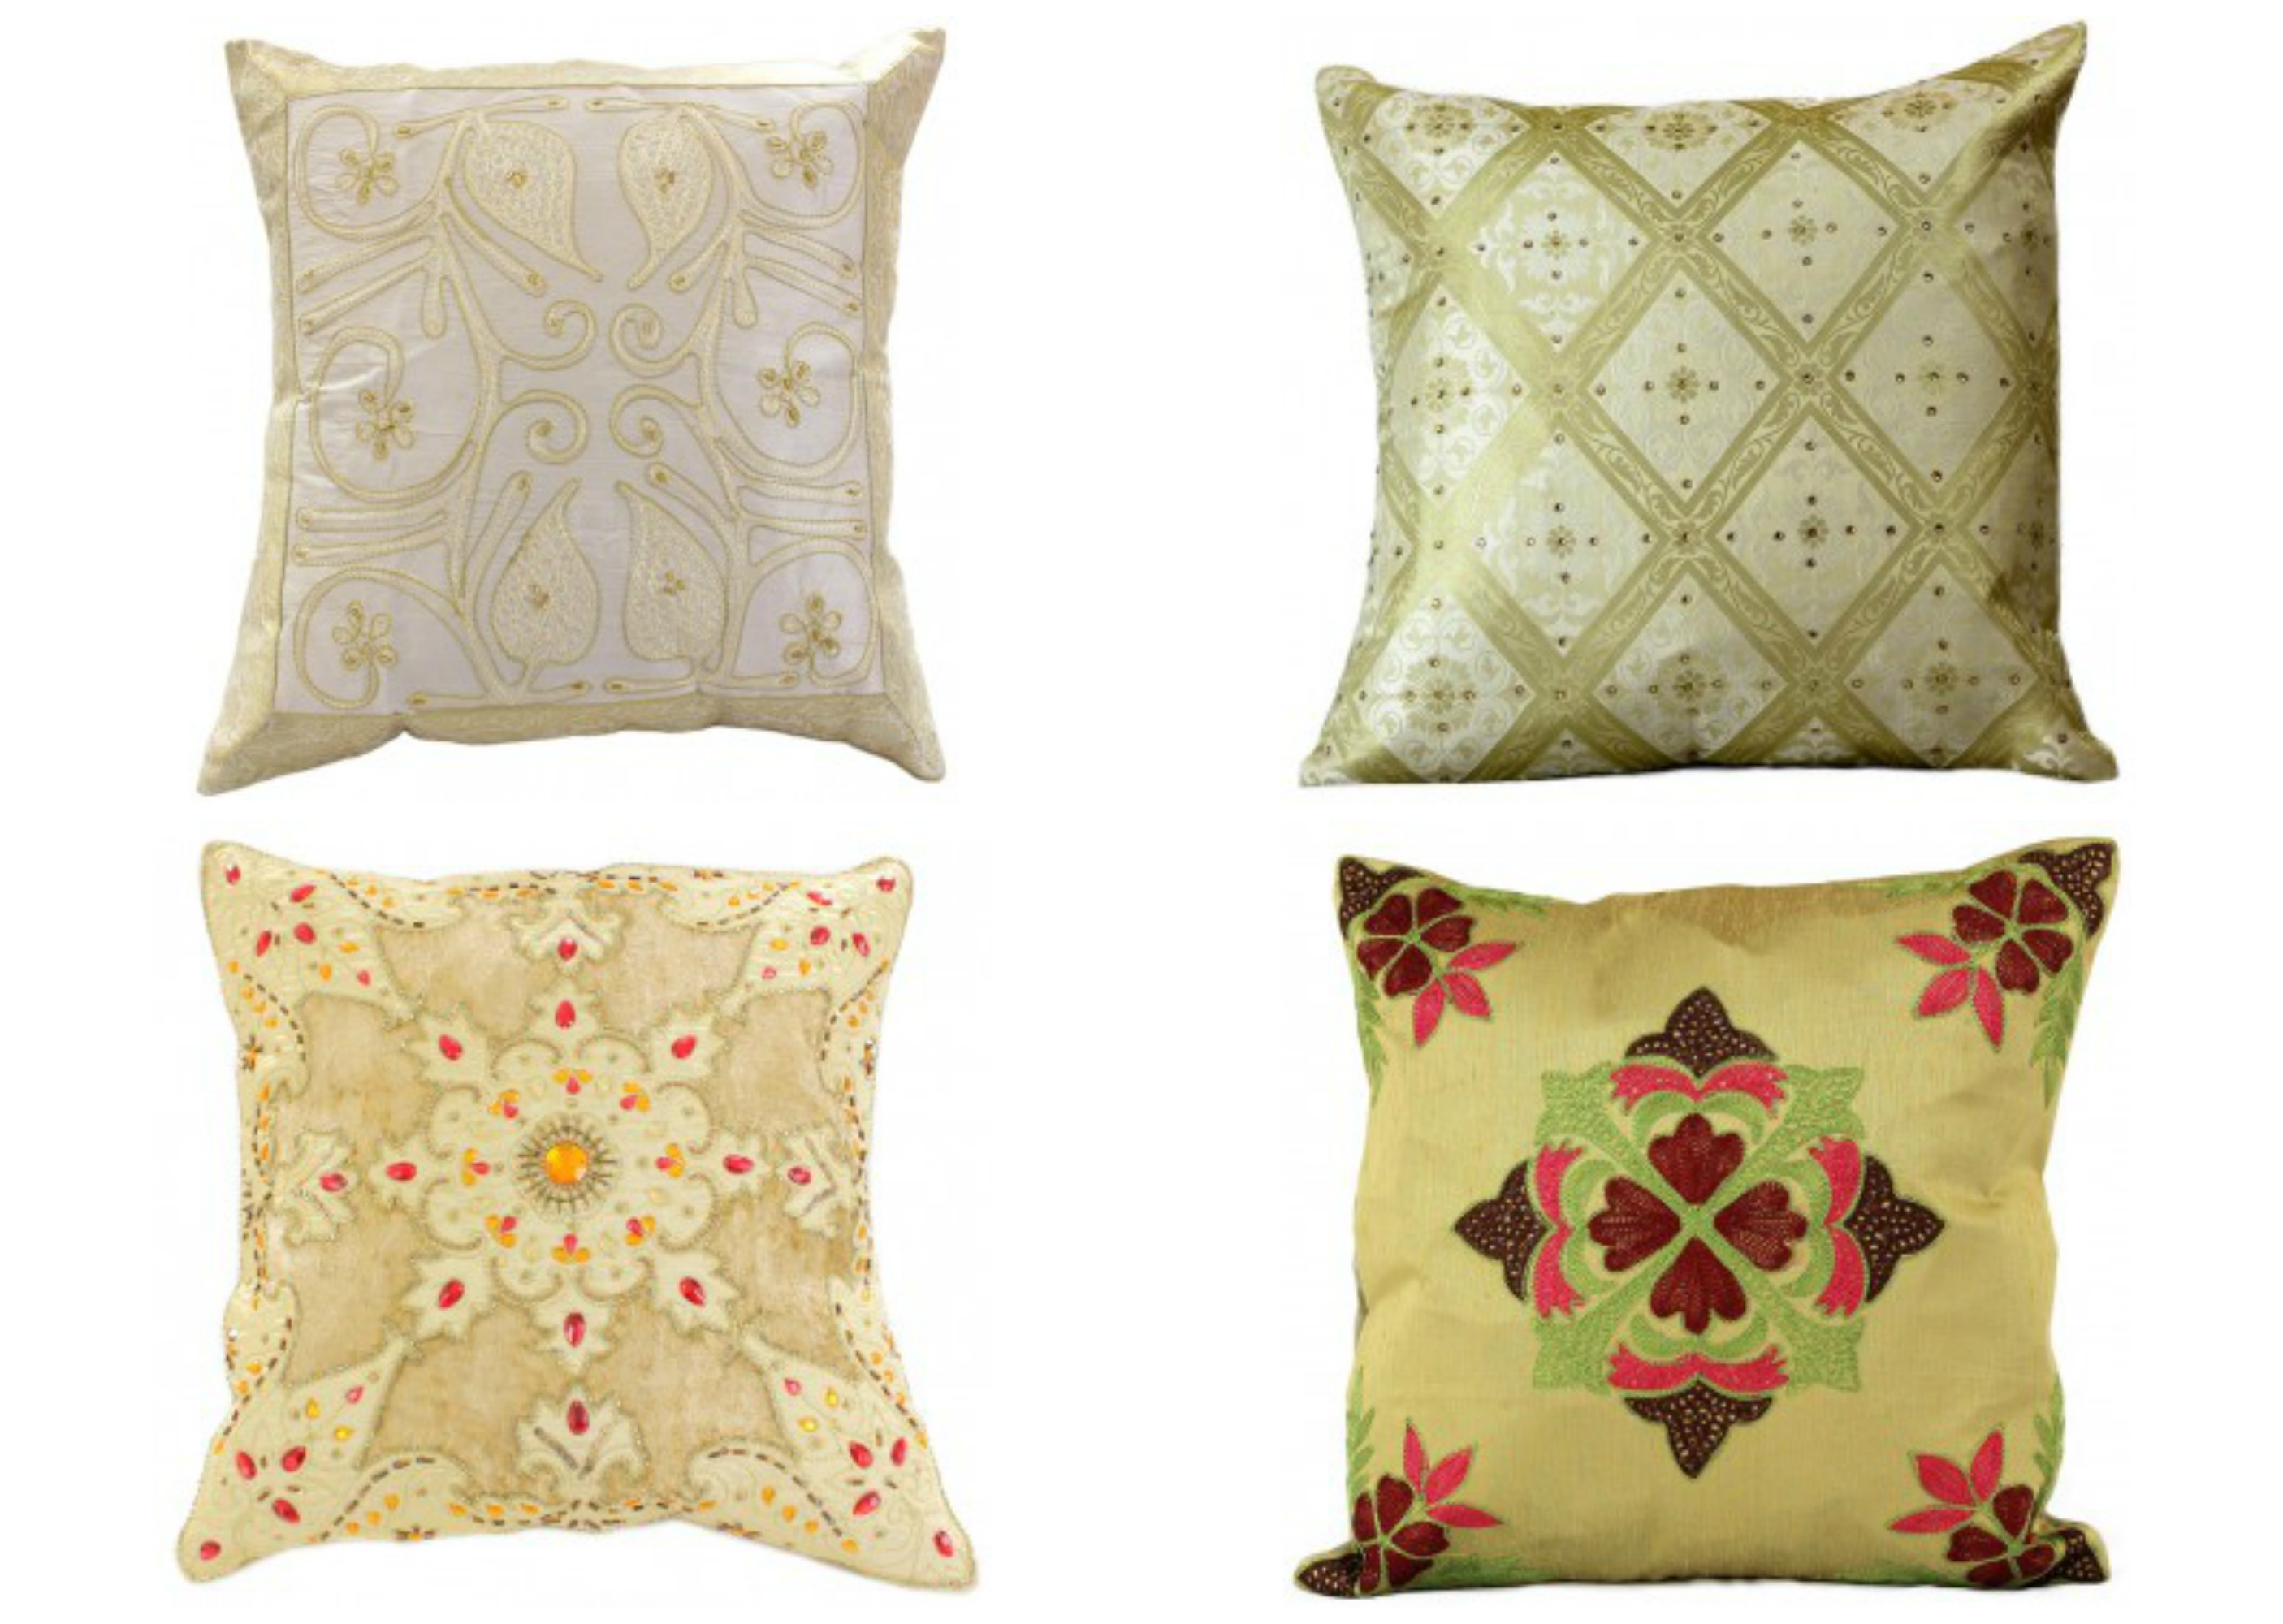 neutral-boho-print-cushion-covers